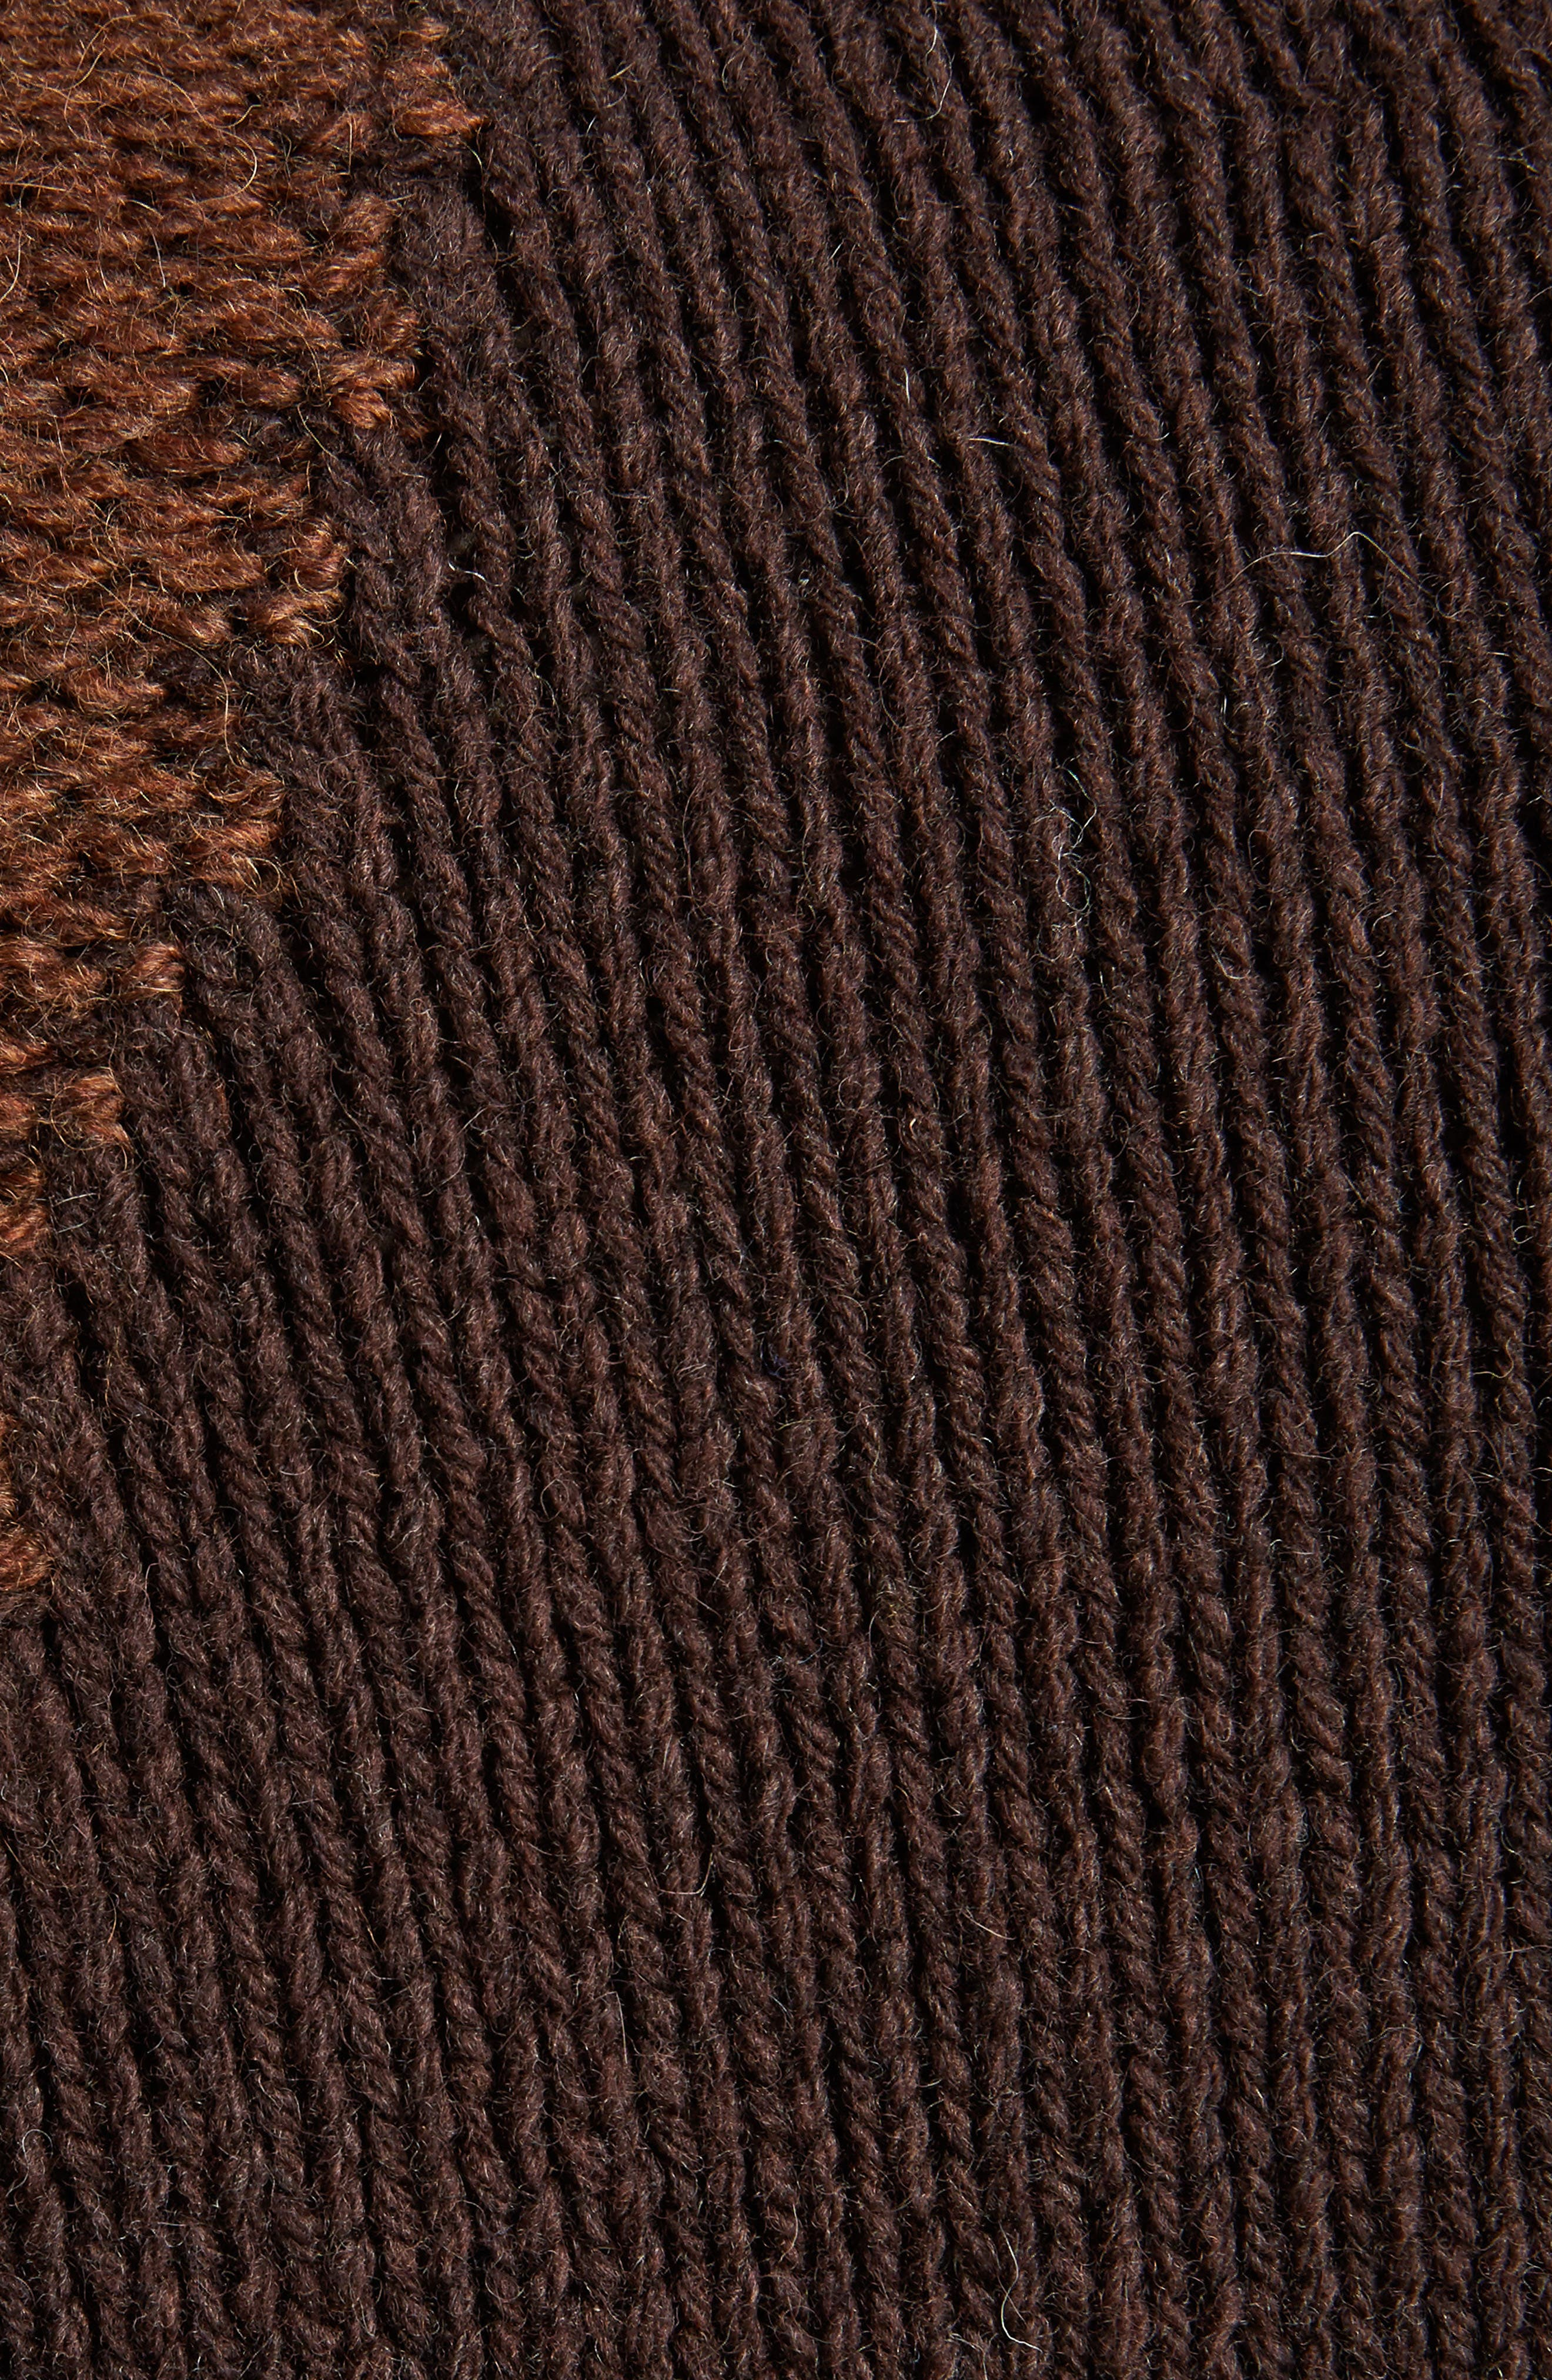 Ovira Distressed Patchwork Sweater,                             Alternate thumbnail 5, color,                             Brown Combo